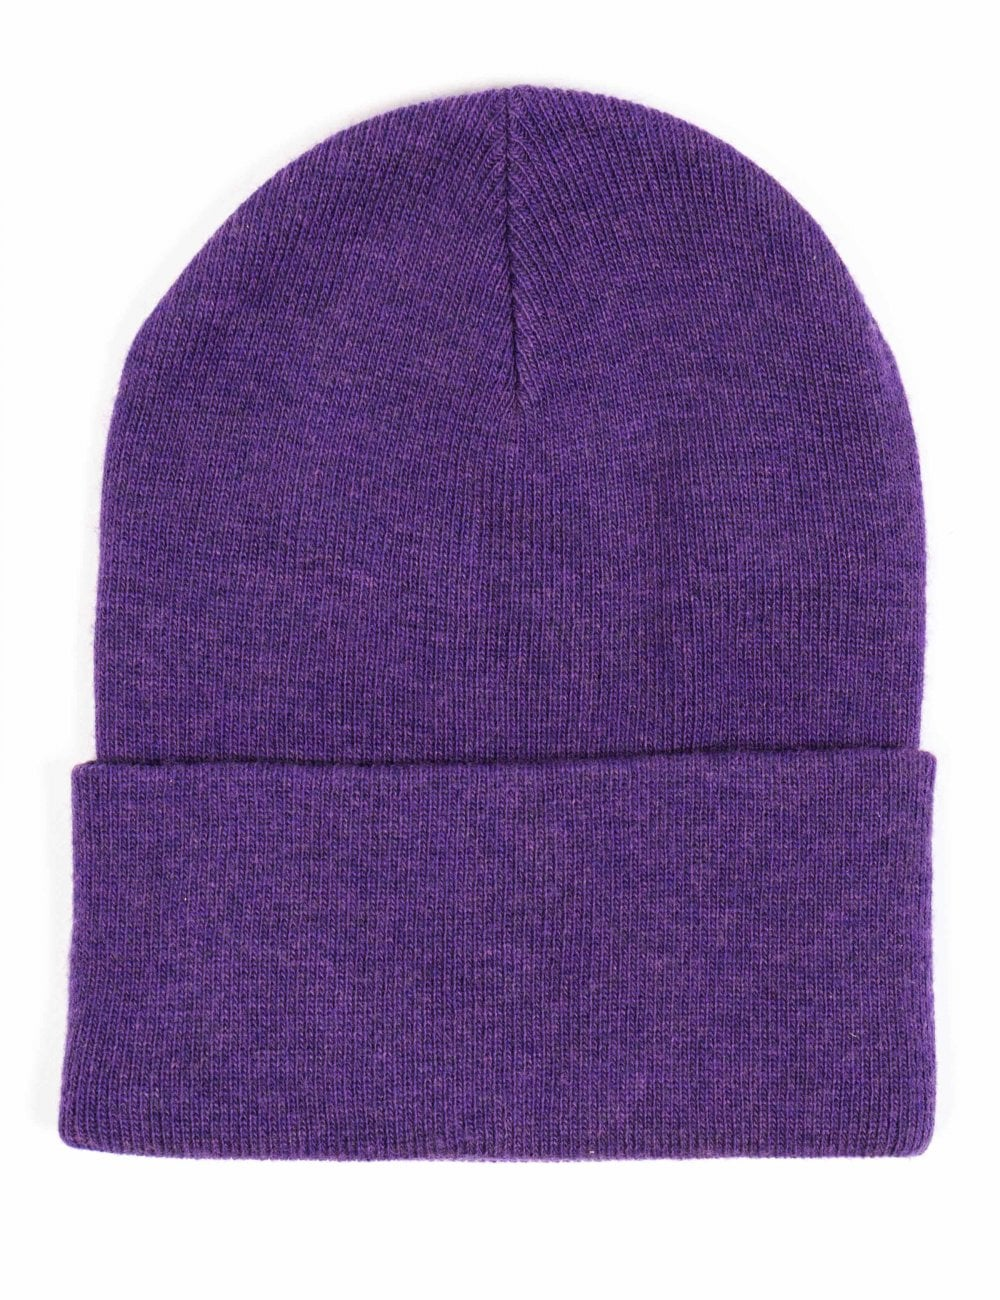 5f13405e780 Carhartt WIP Watch Hat - Frosted Viola Heather - Accessories from ...